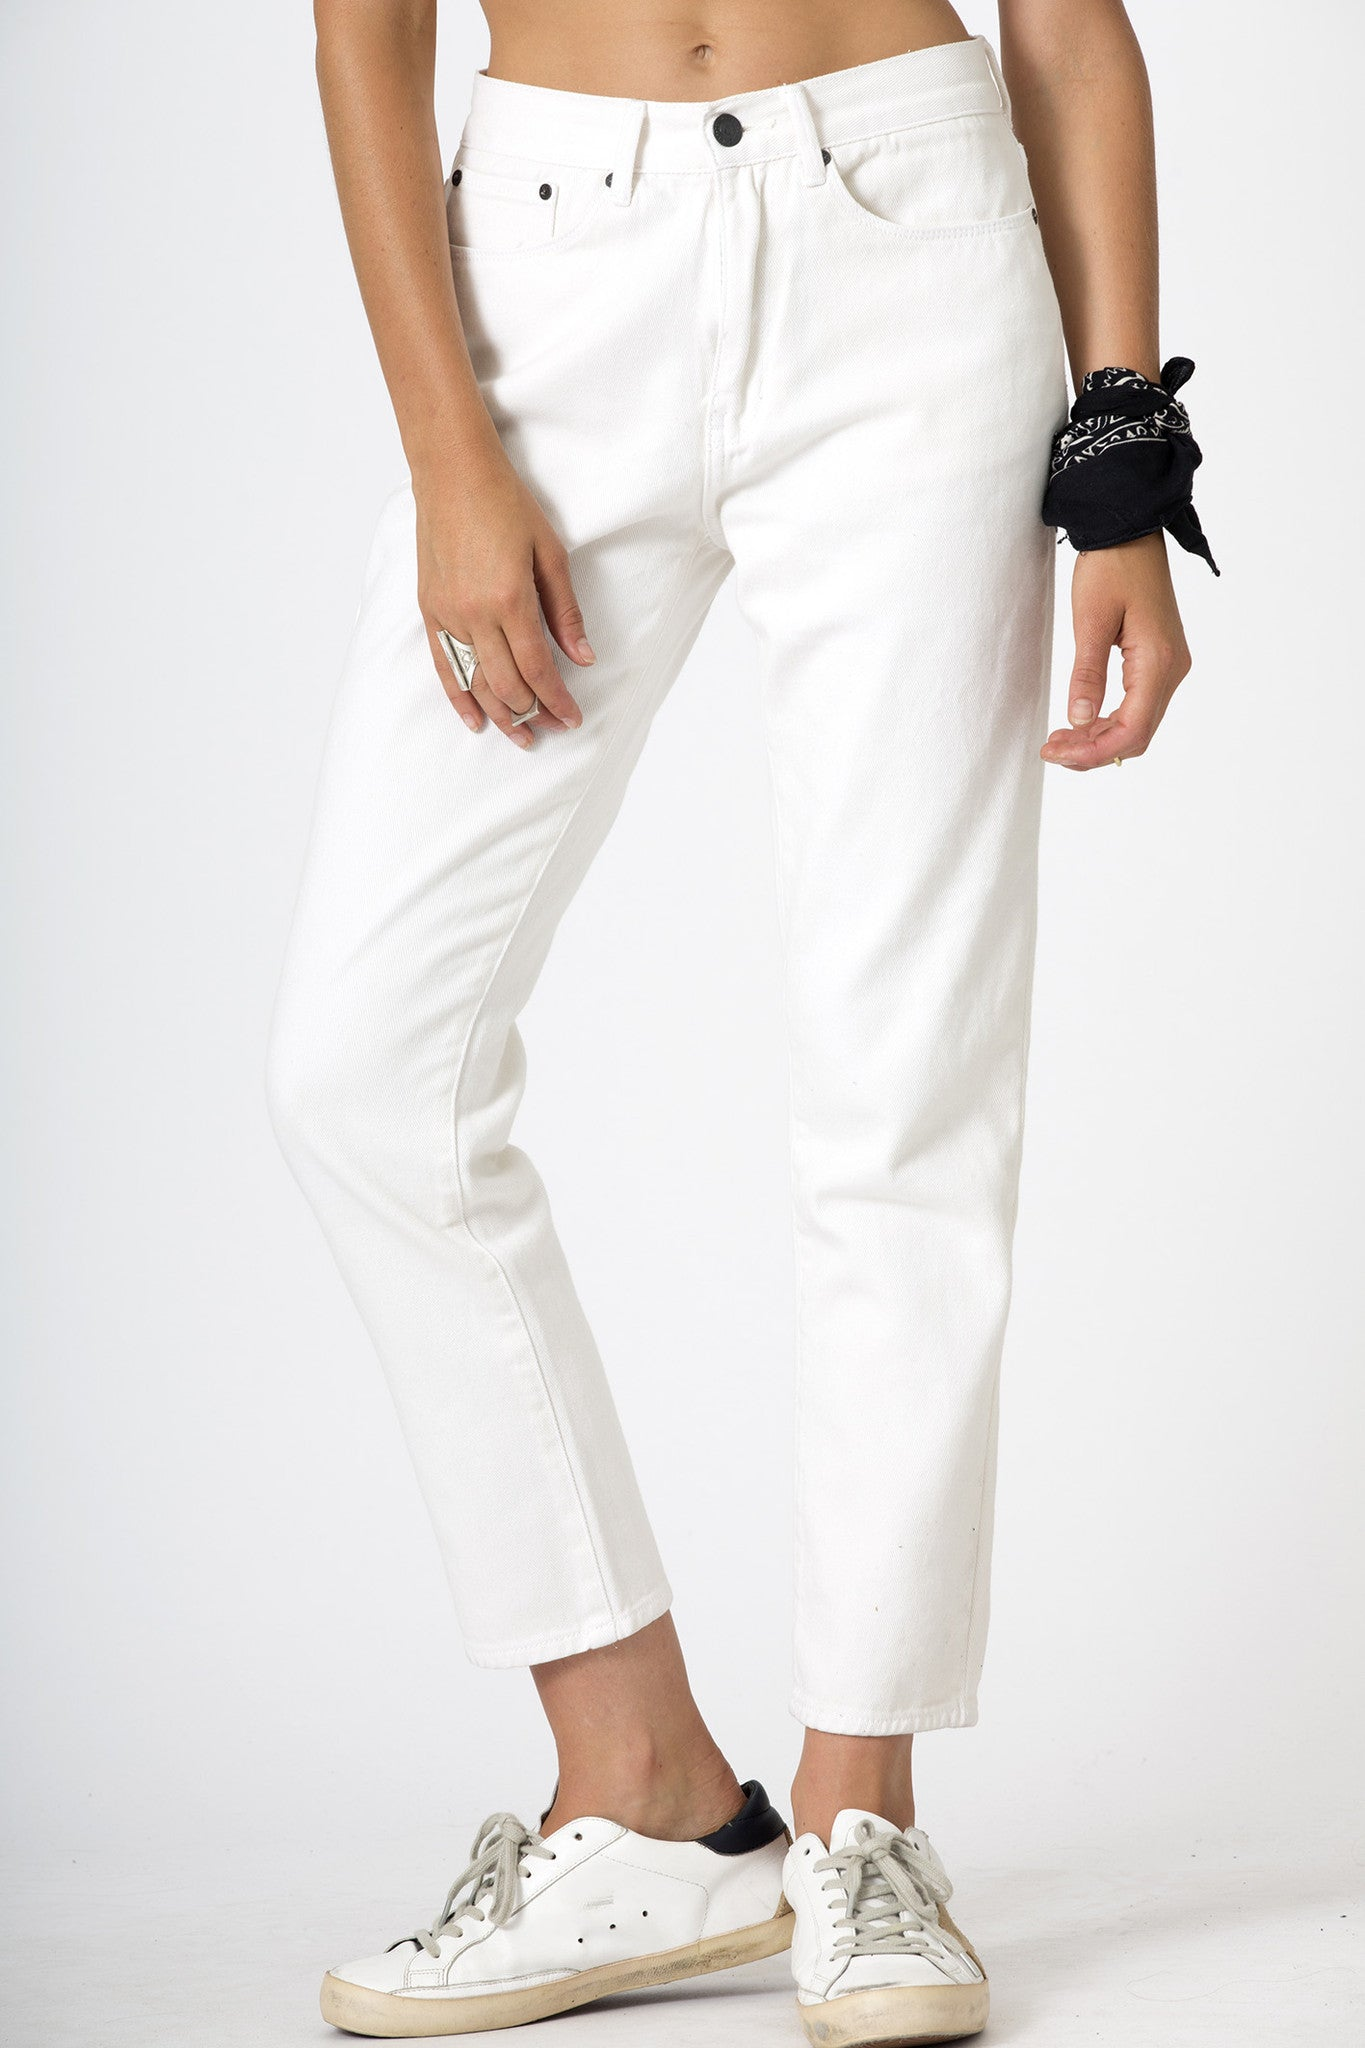 #3A33 Mid Slim Ankle Eclipse White - denimcolab